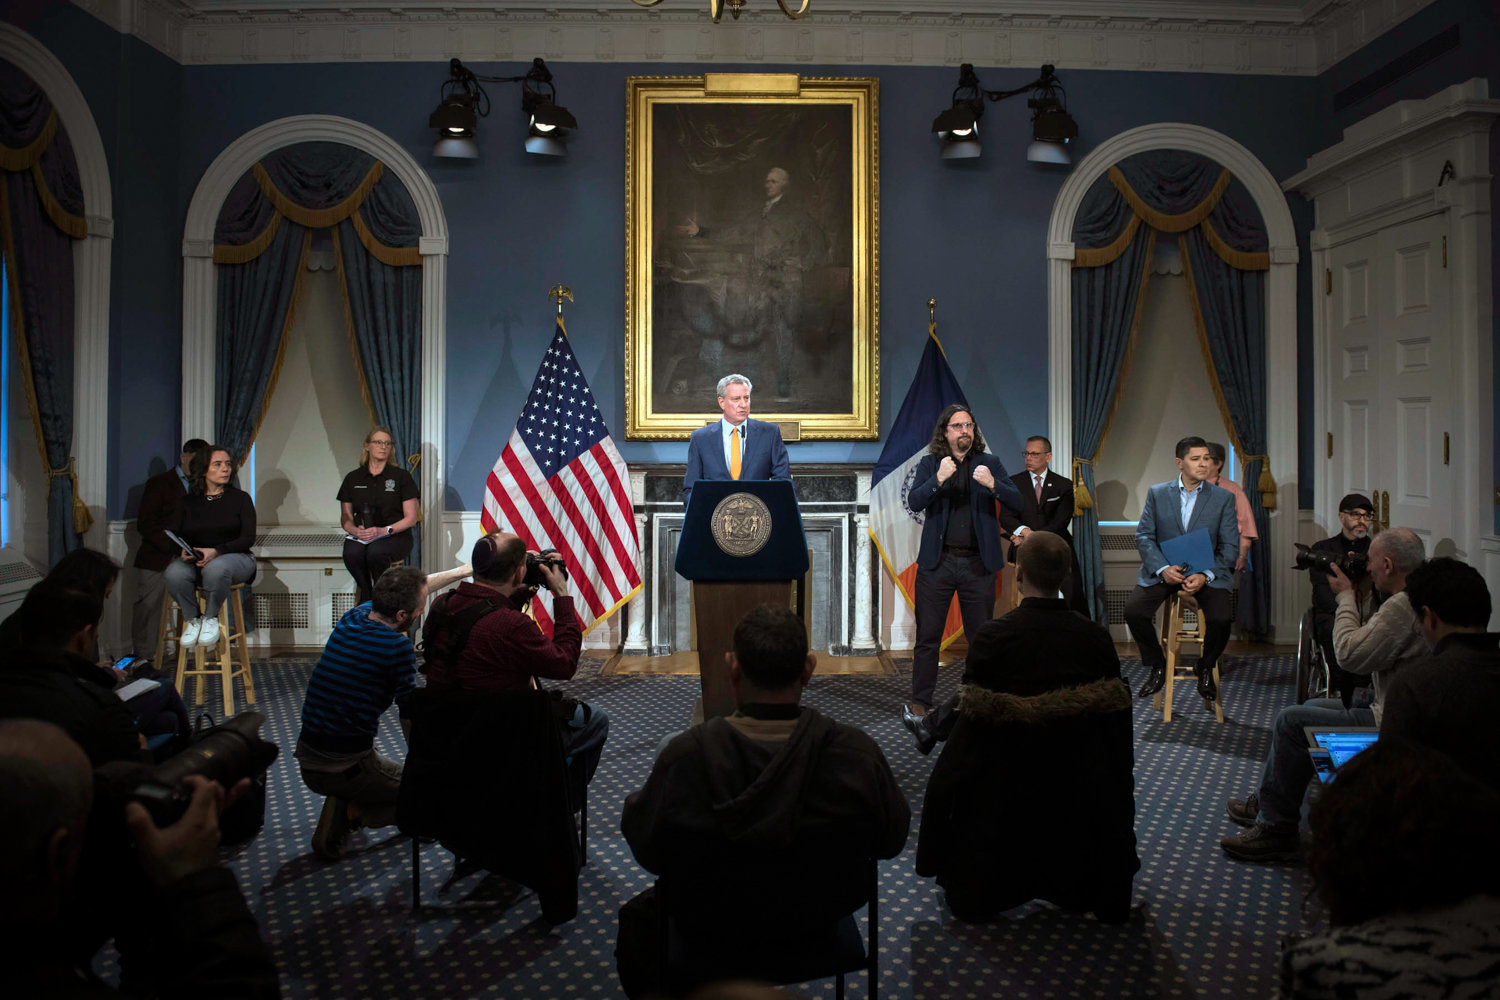 Mayor Bill de Blasio talks about measures the city is taking — including closing public schools until at least April 20 — at a March 15 news conference.